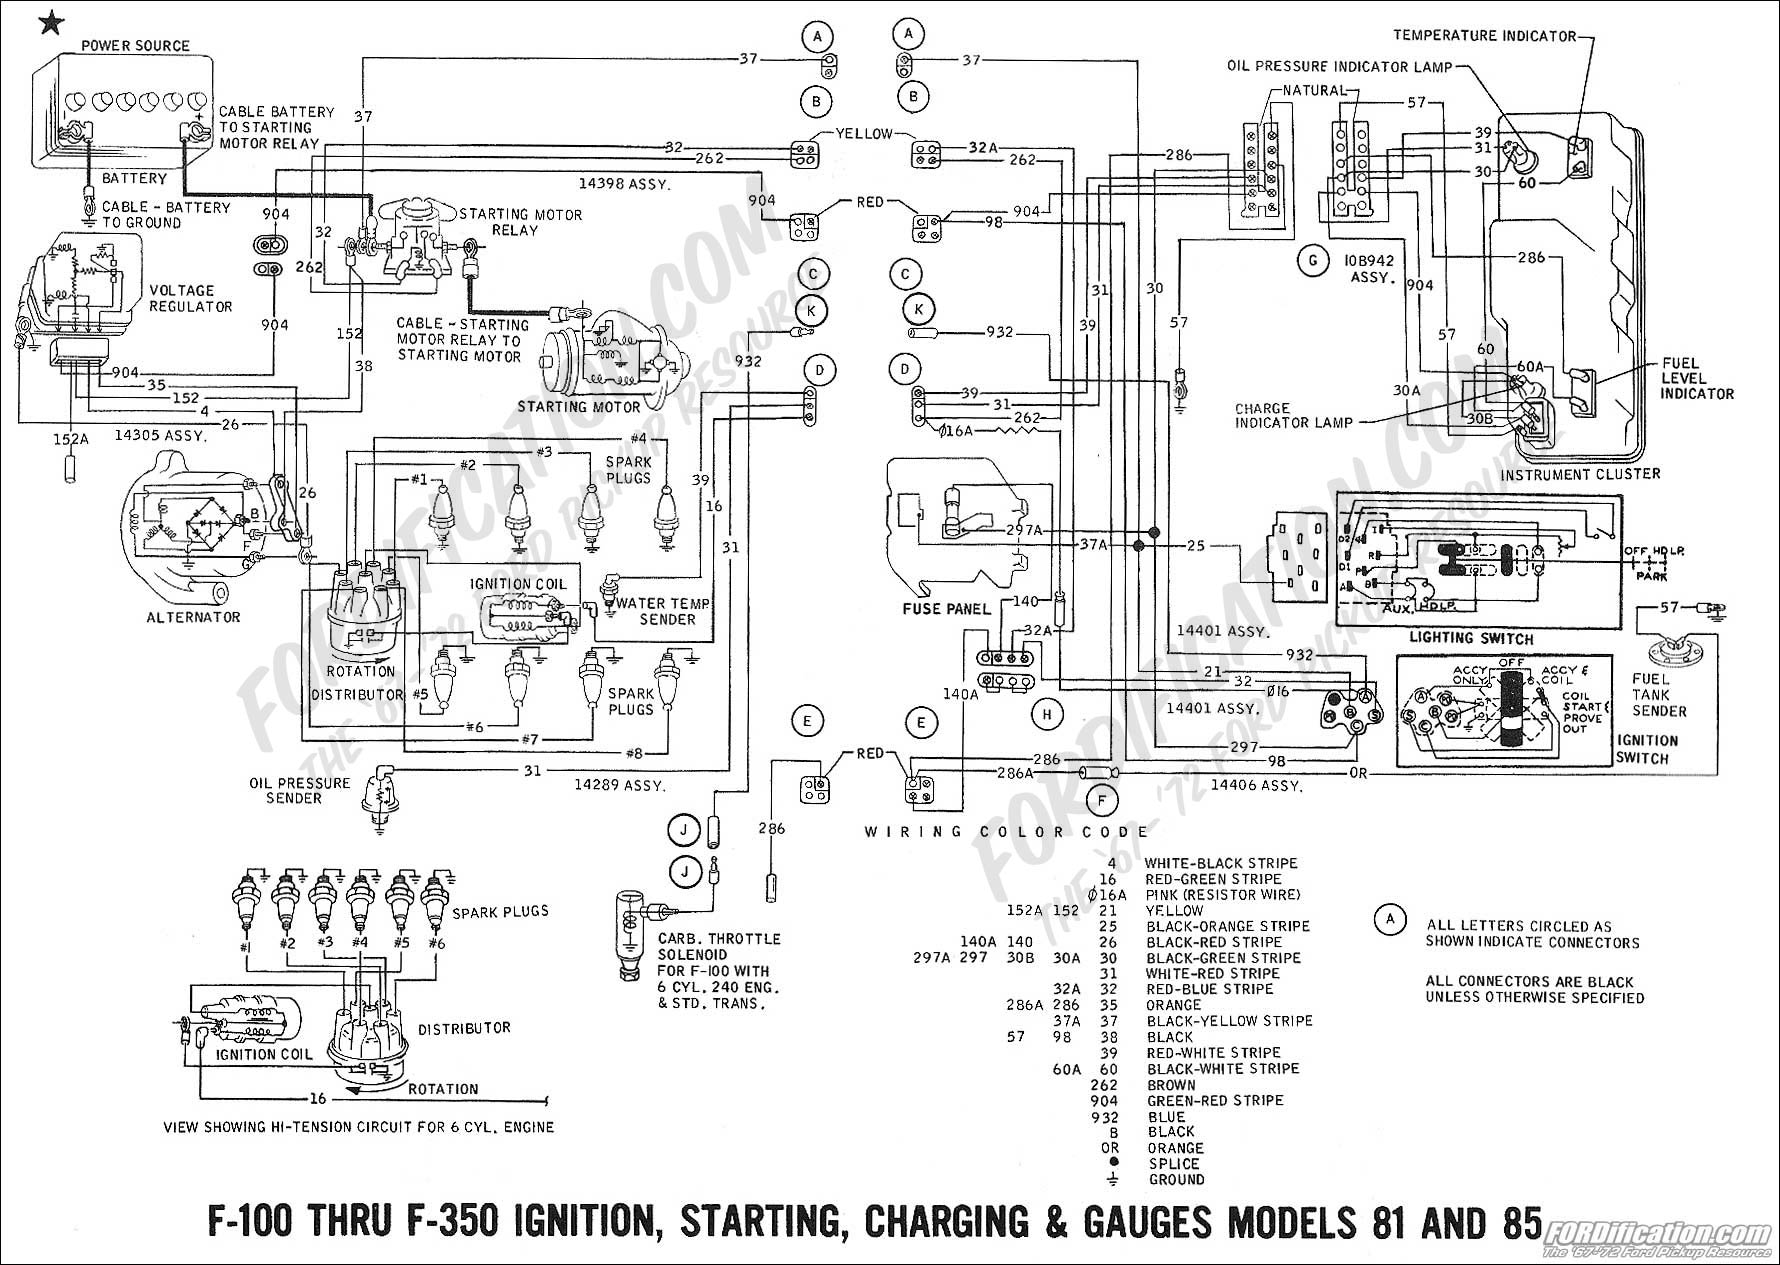 1971 F100 Charging System Wiring Diagram Trusted Diagrams 93 Ford Mustang Alternator Truck Technical Drawings And Schematics Section H Rh Fordification Com 1993 Pick Up